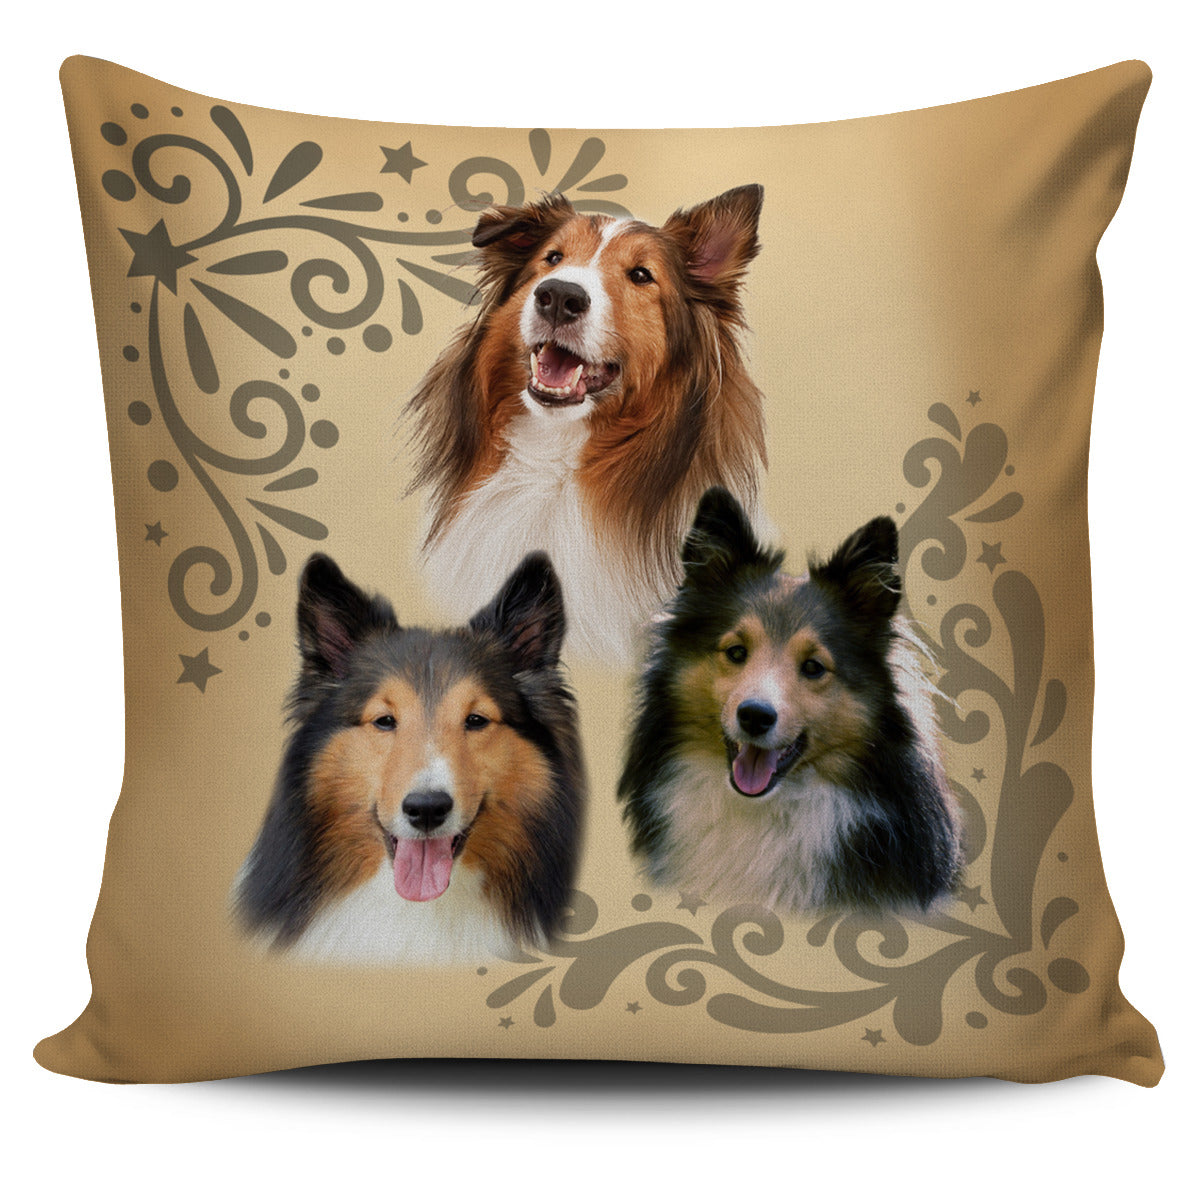 Cute Sheltie Pillow